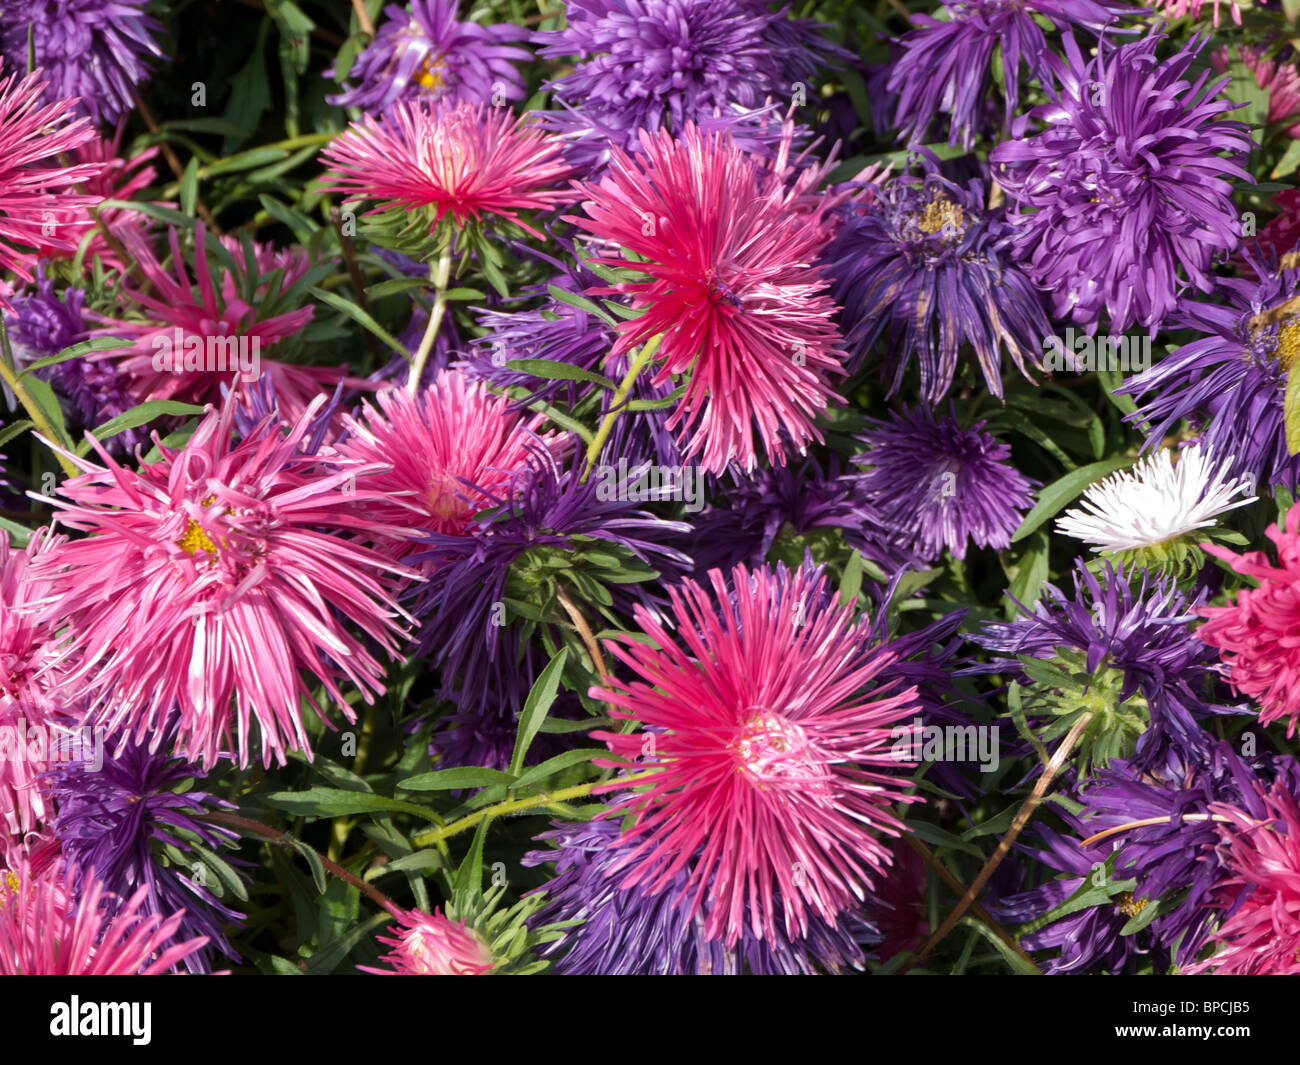 Aster Compositae - Stock Image